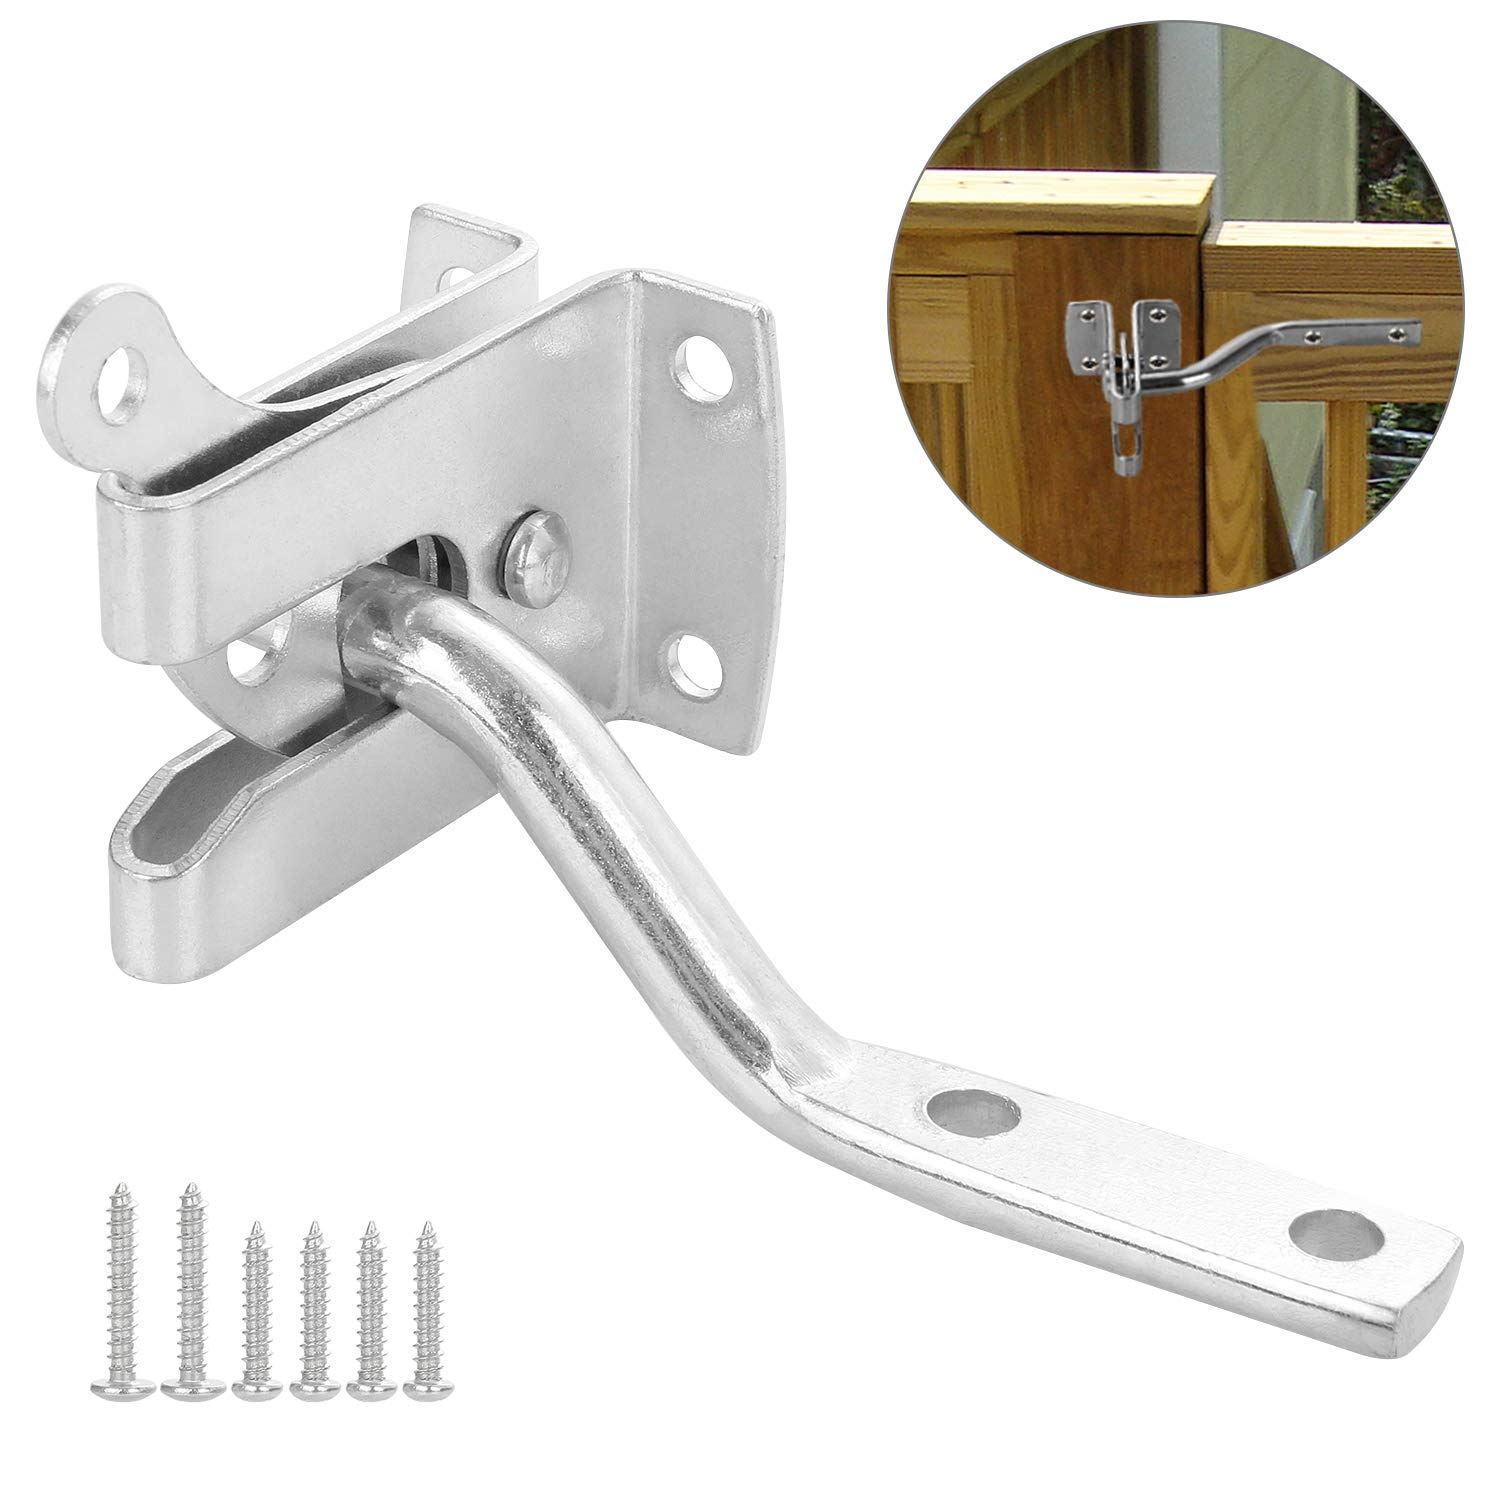 Acrux7 Gate Latch, Automatic Self Locking, Vinyl Fence Gate Latch for Out-Swing Gates, Doors, Stainless Steel 1-Pack